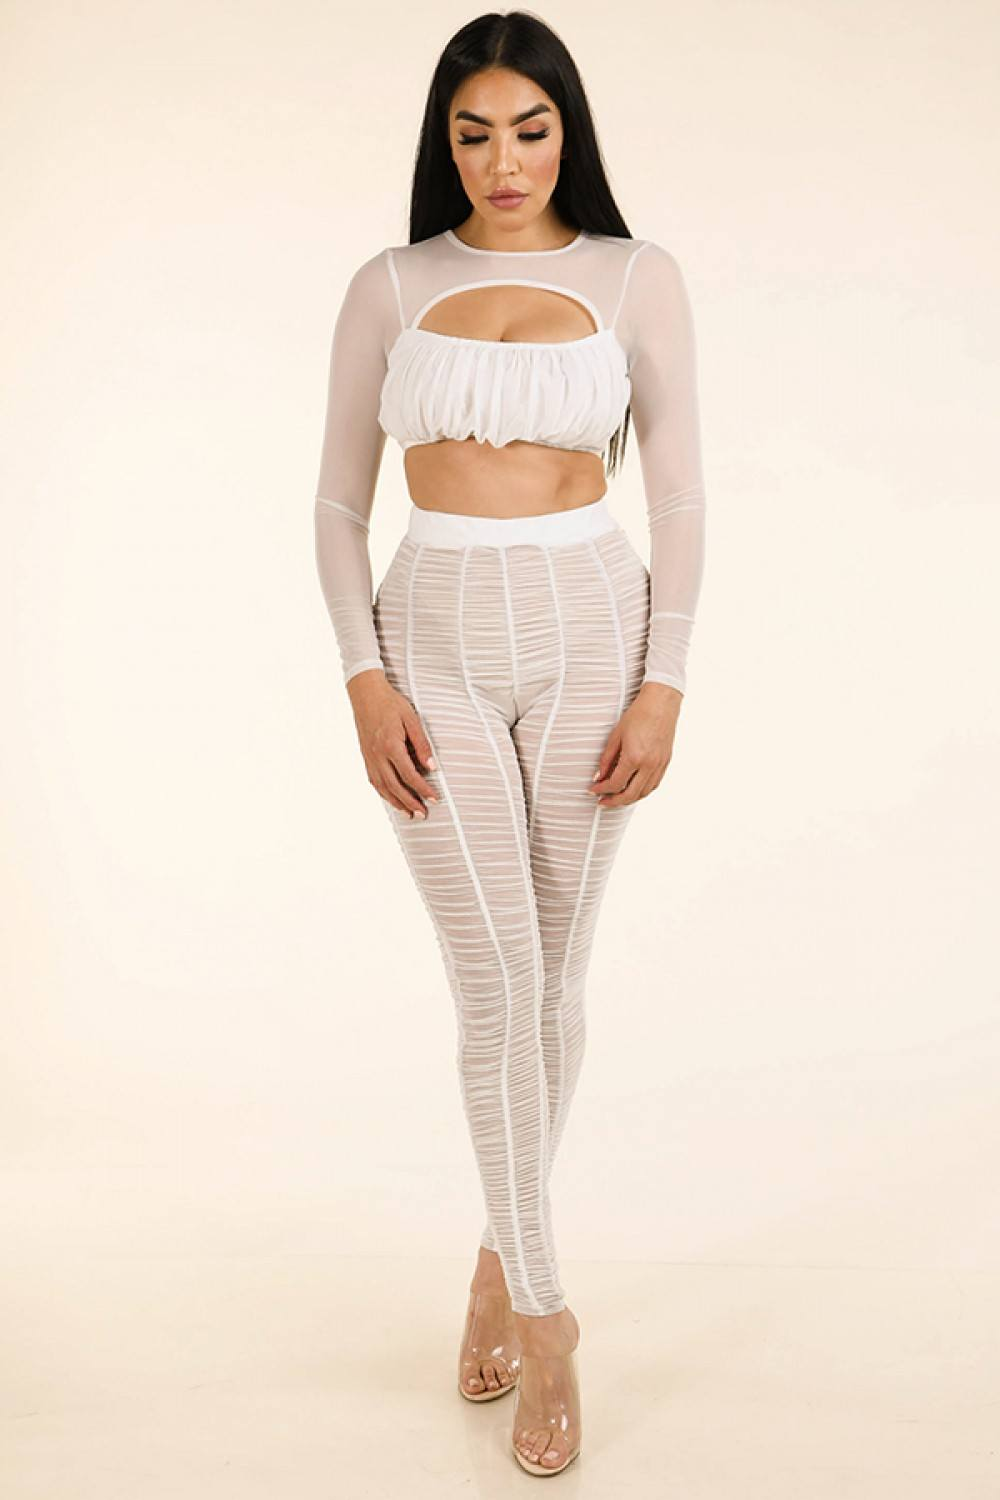 Shirred Mesh Top & Ruched Mesh Leggings Set - Boujee Boutique Incorporated